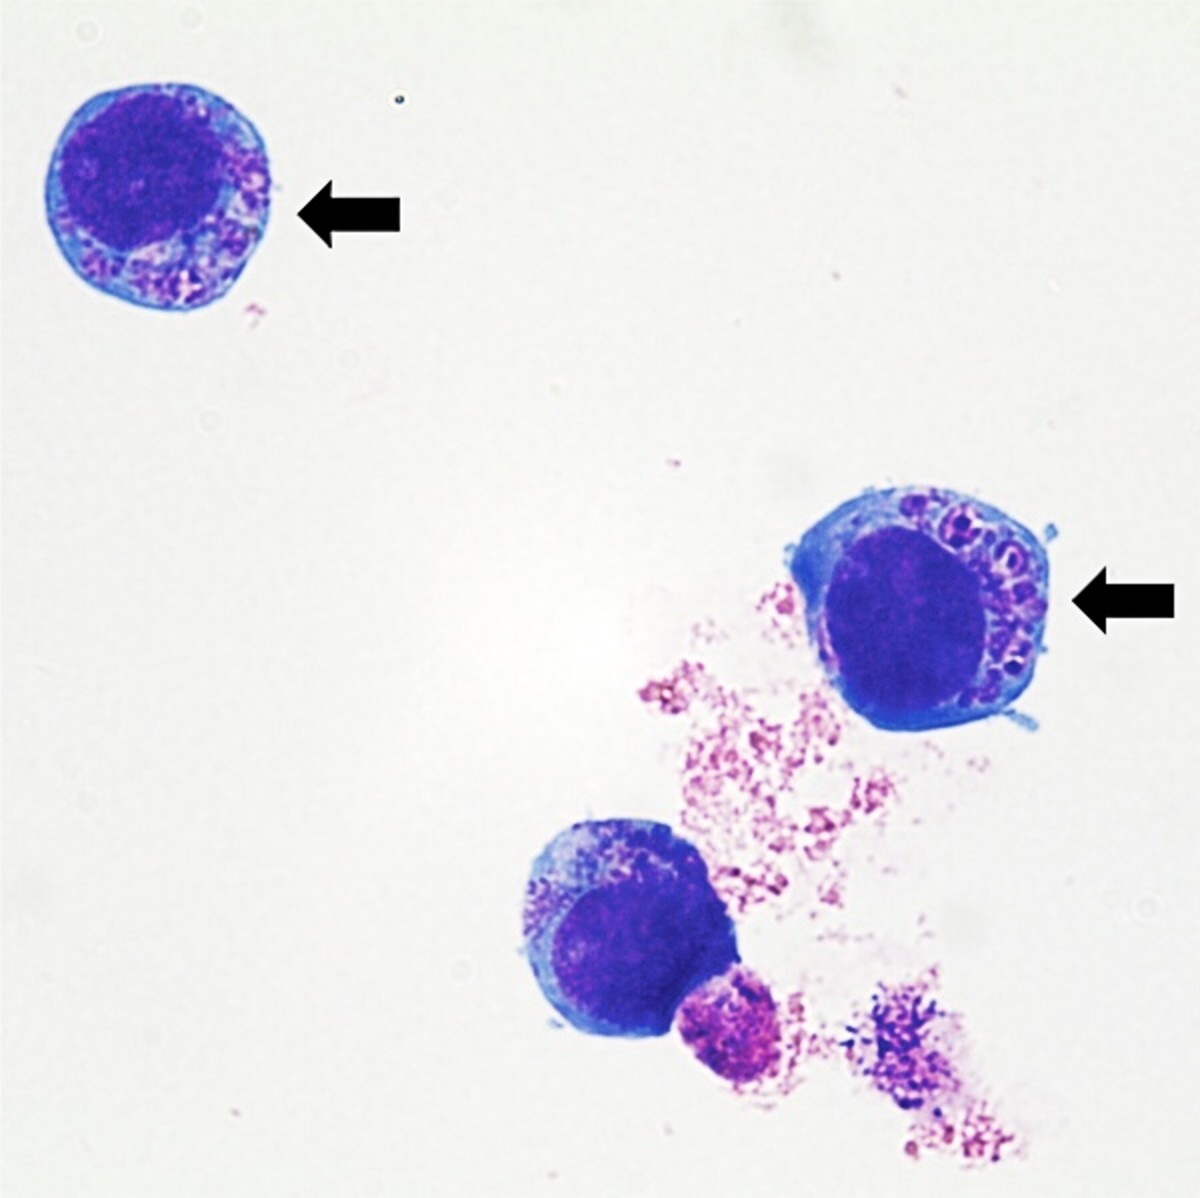 Anaplasma phagocytophilum in cultured white blood cells